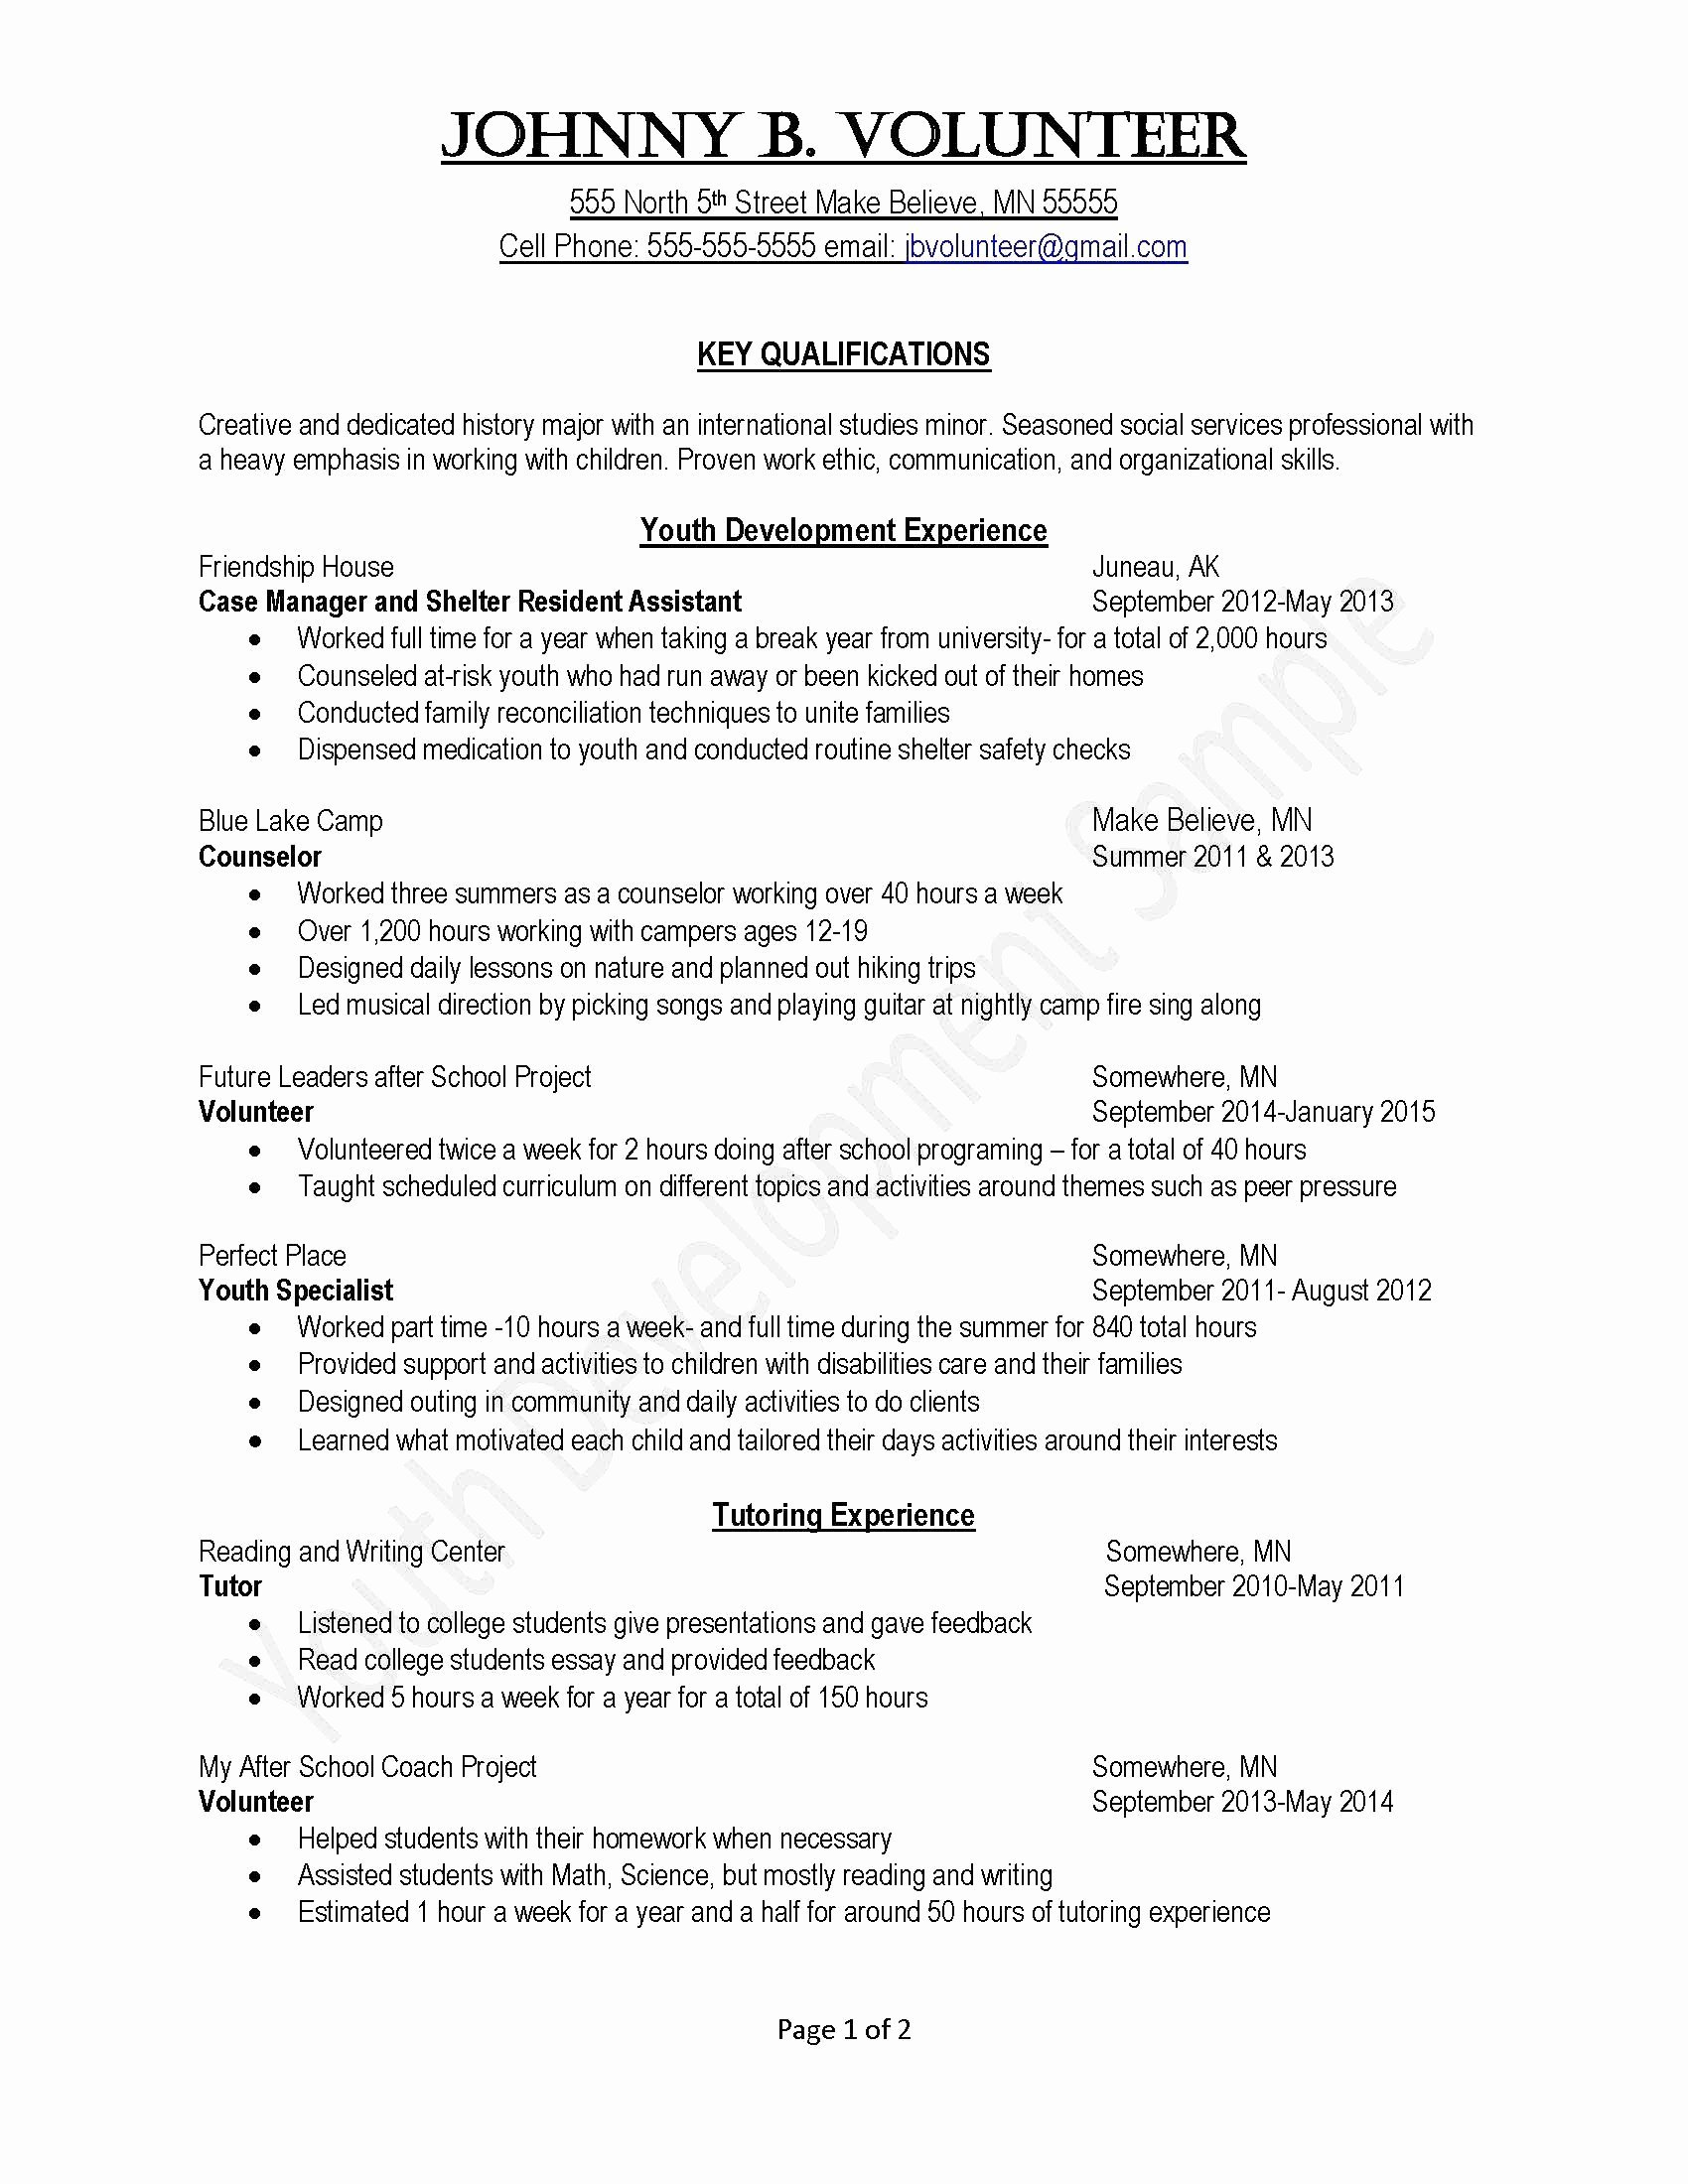 28 Elegant Museum Of Science And Industry Field Trip Worksheets Also Museum Of Science And Industry Field Trip Worksheets